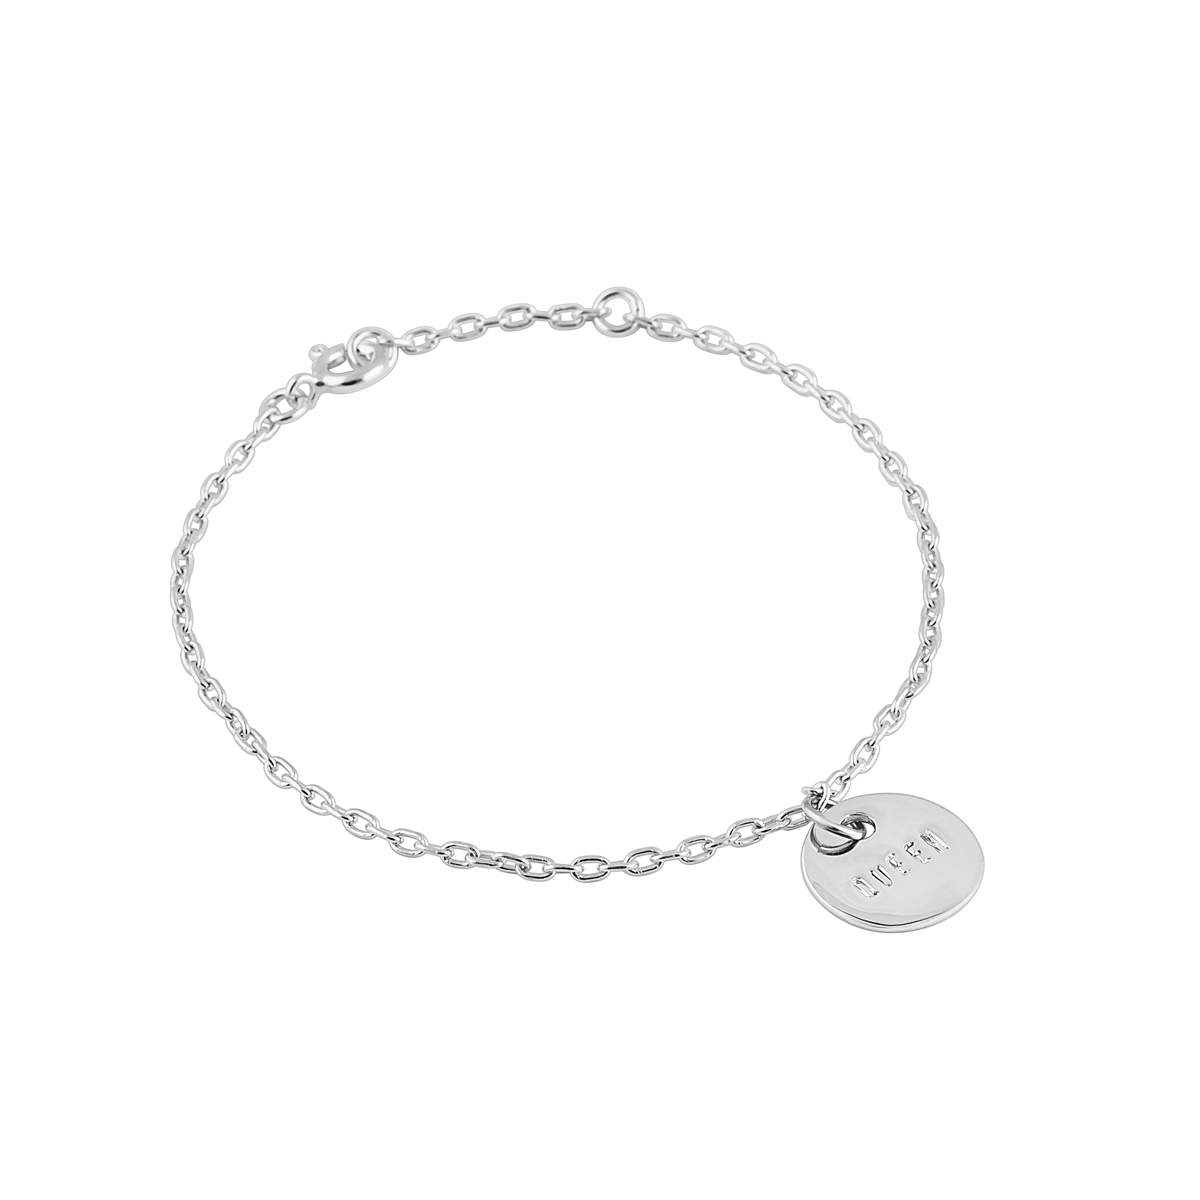 QUEEN COIN BRACELET SILVER in the group BRACELETS at EMMA ISRAELSSON (brace033)